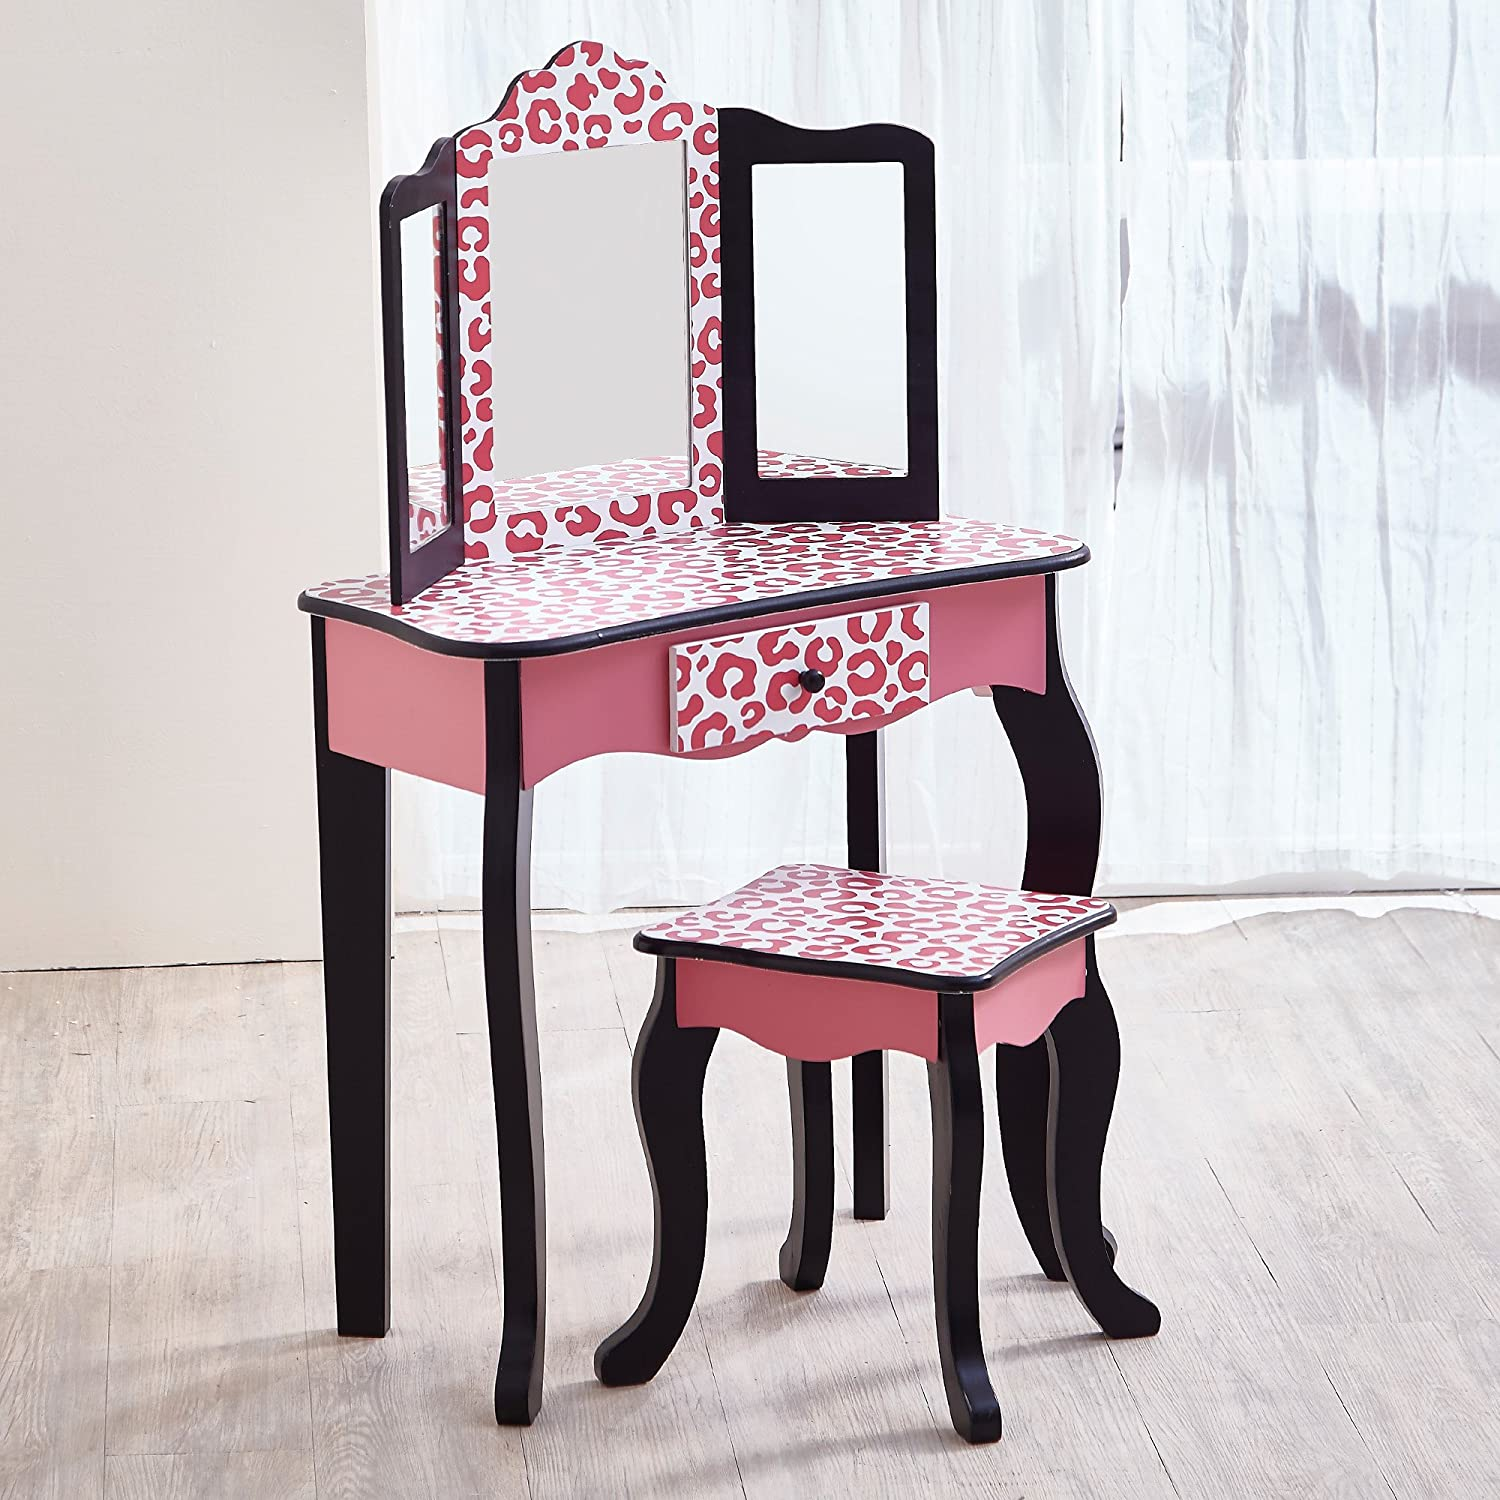 Amazon Com Teamson Kids Pretend Play Kids Vanity Table And Chair Vanity Set With Mirror Makeup Dressing Table With Drawer Fashion Leopard Prints Gisele Play Vanity Set Pink Black Toys Games